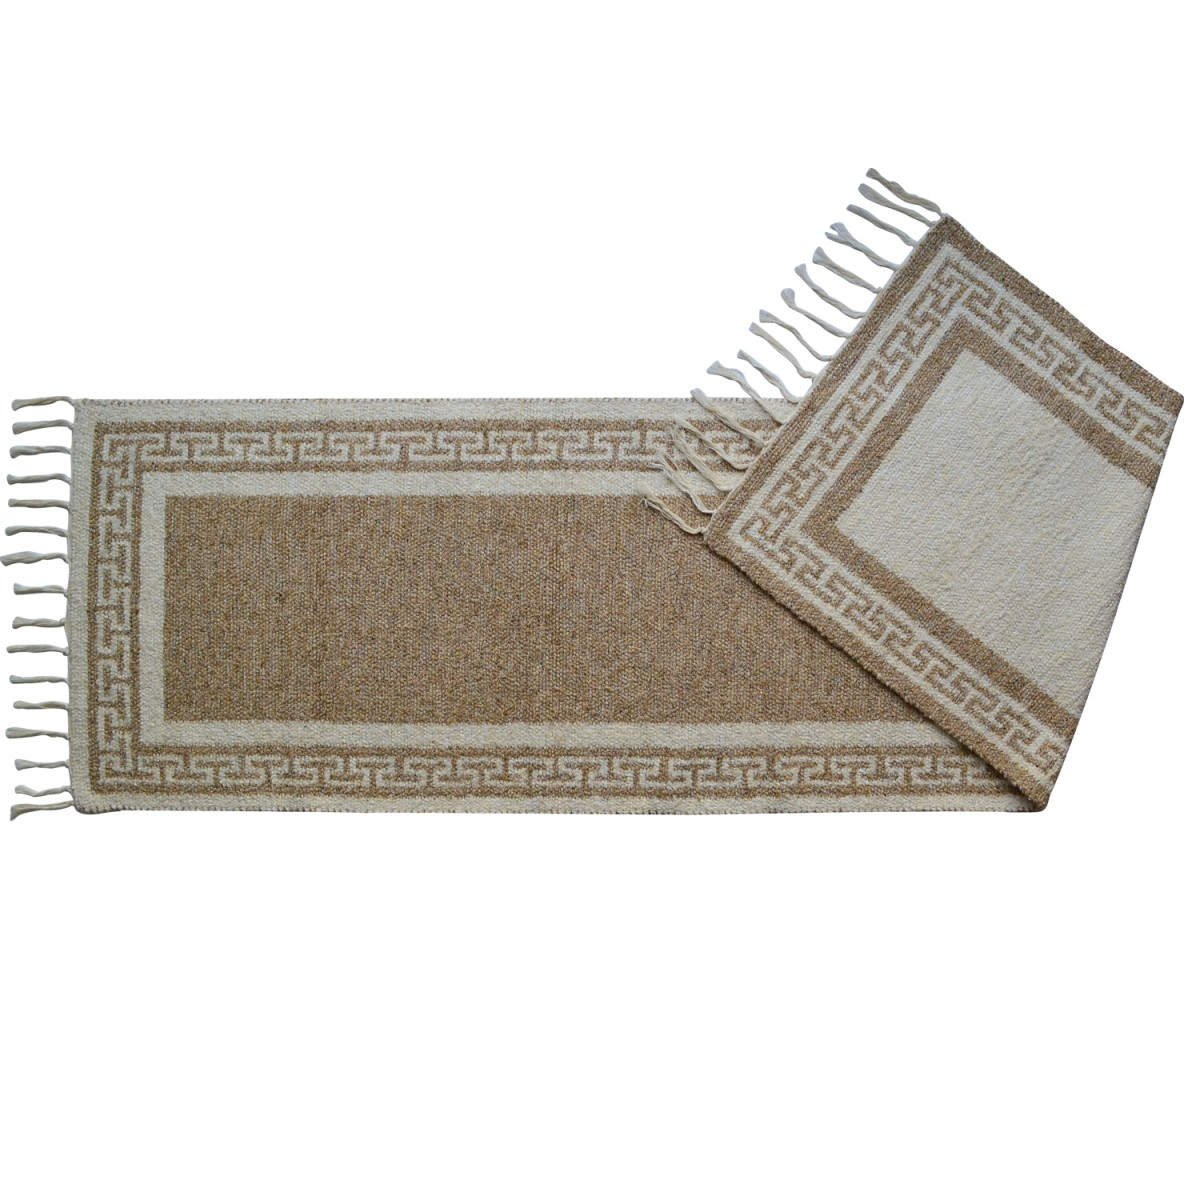 Greek_Key_Two-sided_Runner_Rug-Beige-1